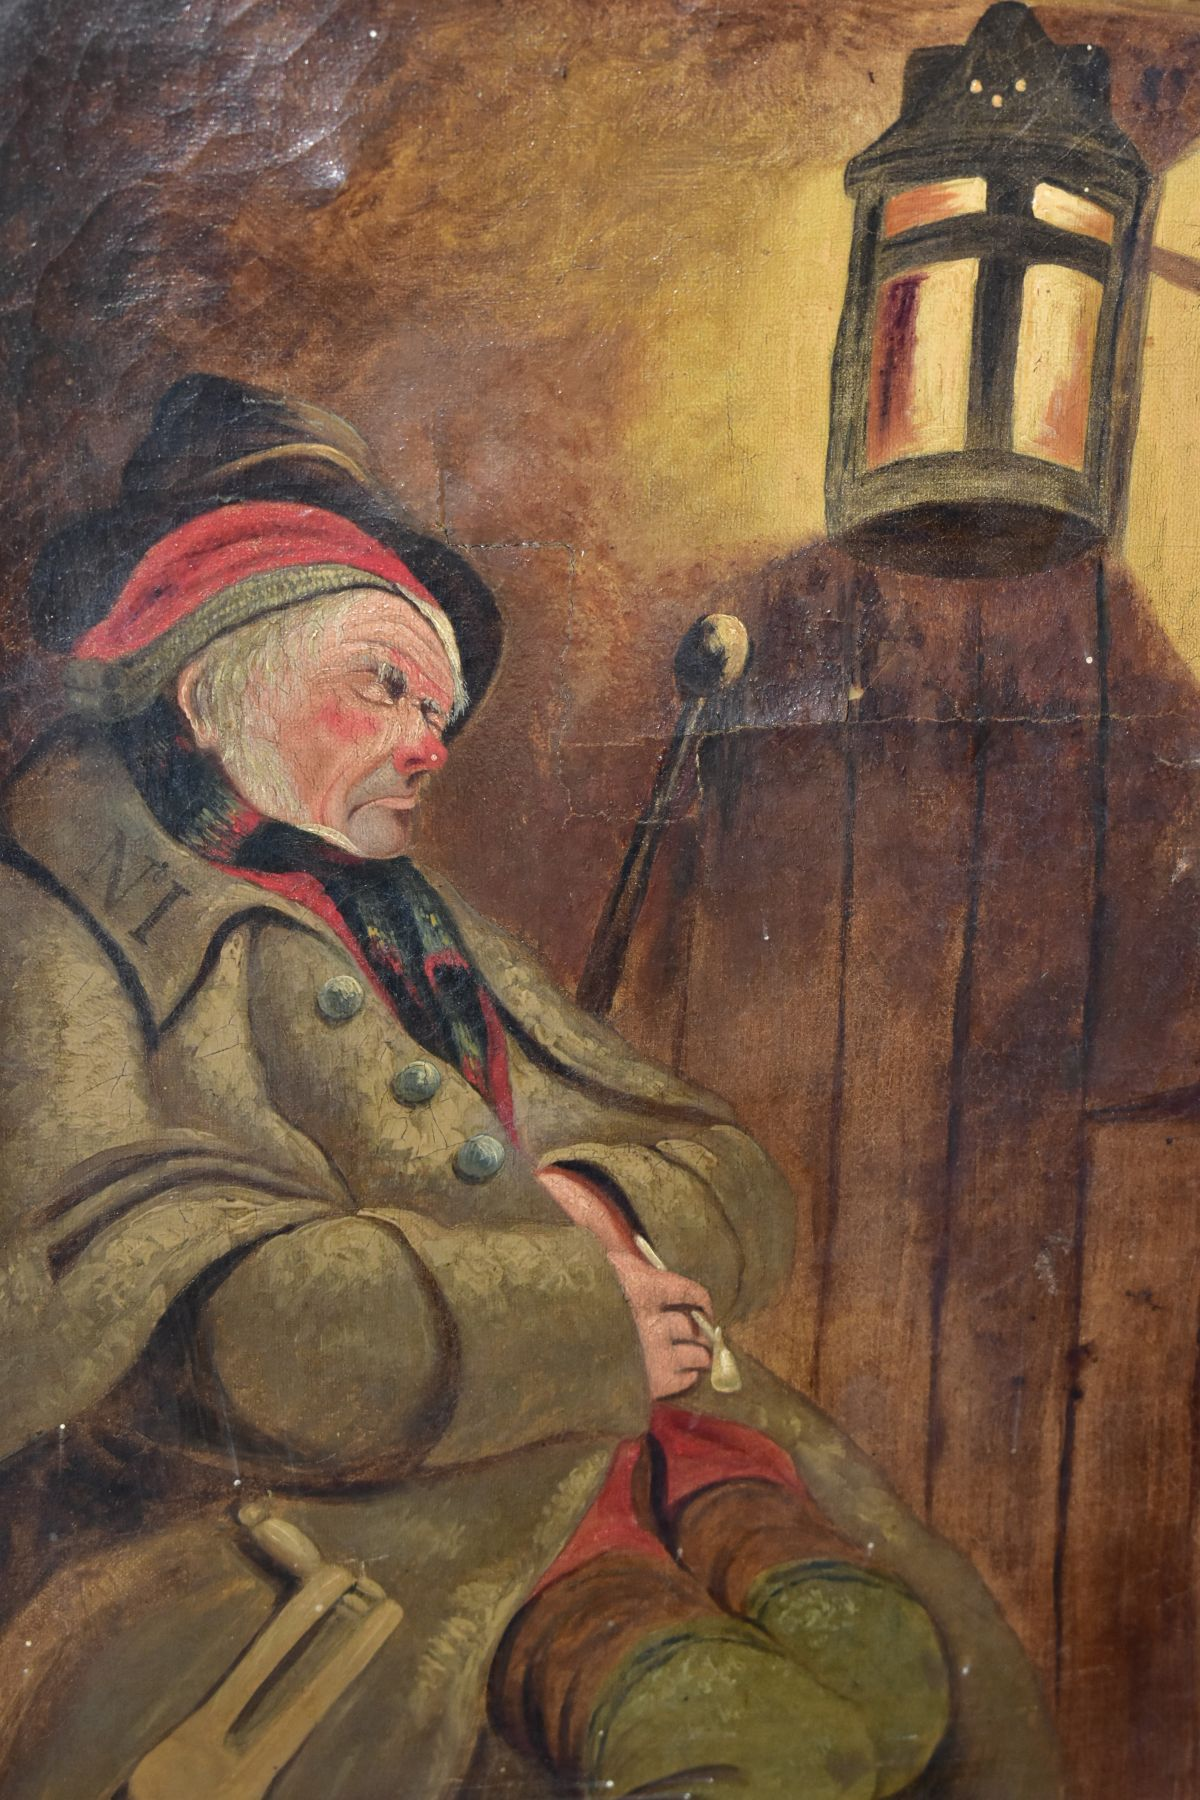 PAINTINGS AND PRINTS, ETC, to include an unsigned oil on canvas depicting a sleeping night watchman, - Image 3 of 7